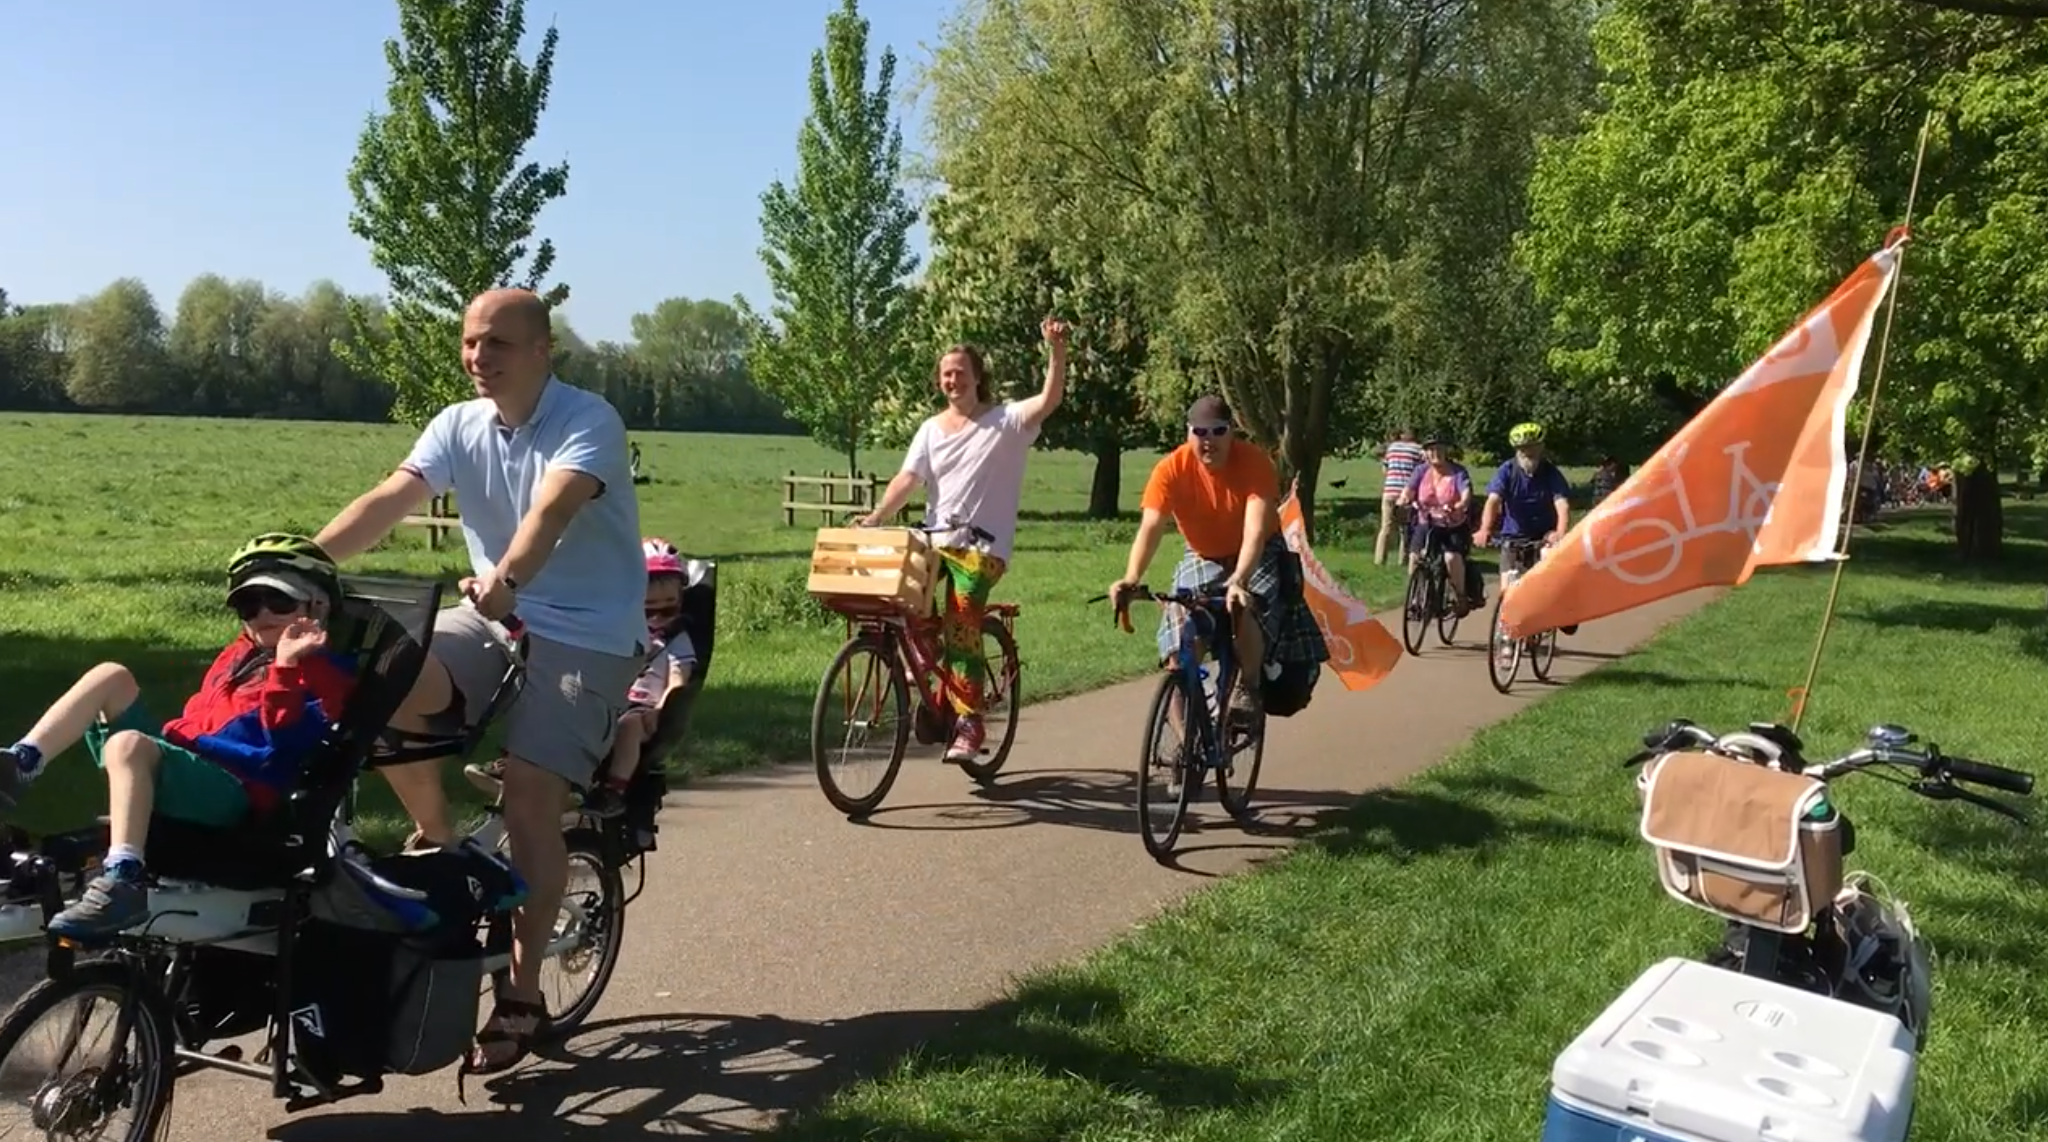 A number of people riding through Stourbridge Common including a father on a tandem cycle with two children